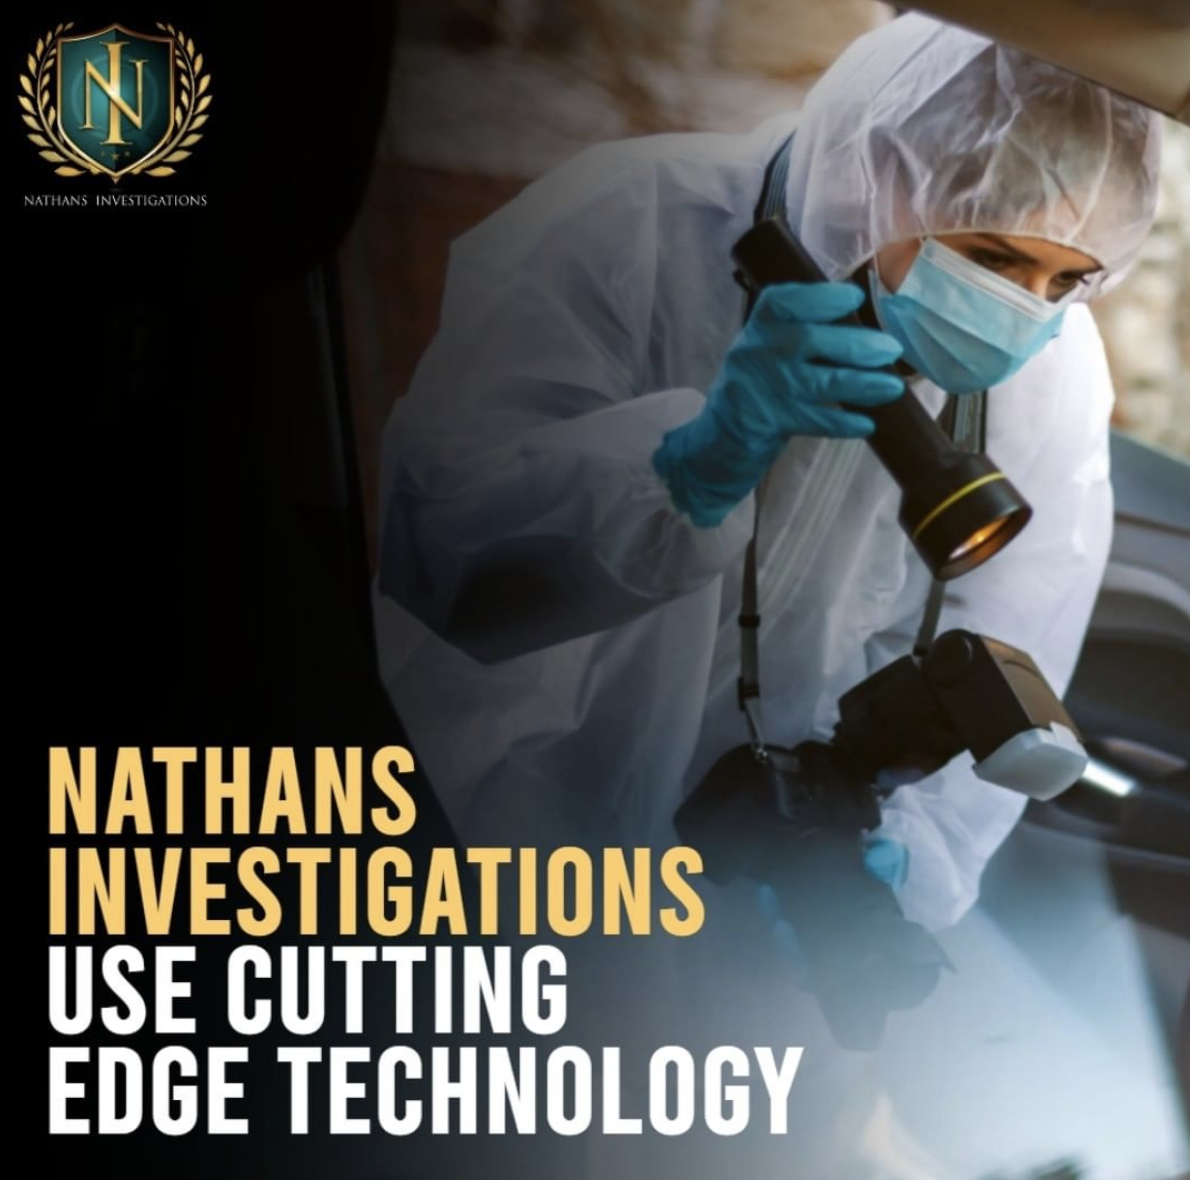 Nathans Investigations Is A Premier Private Investigation